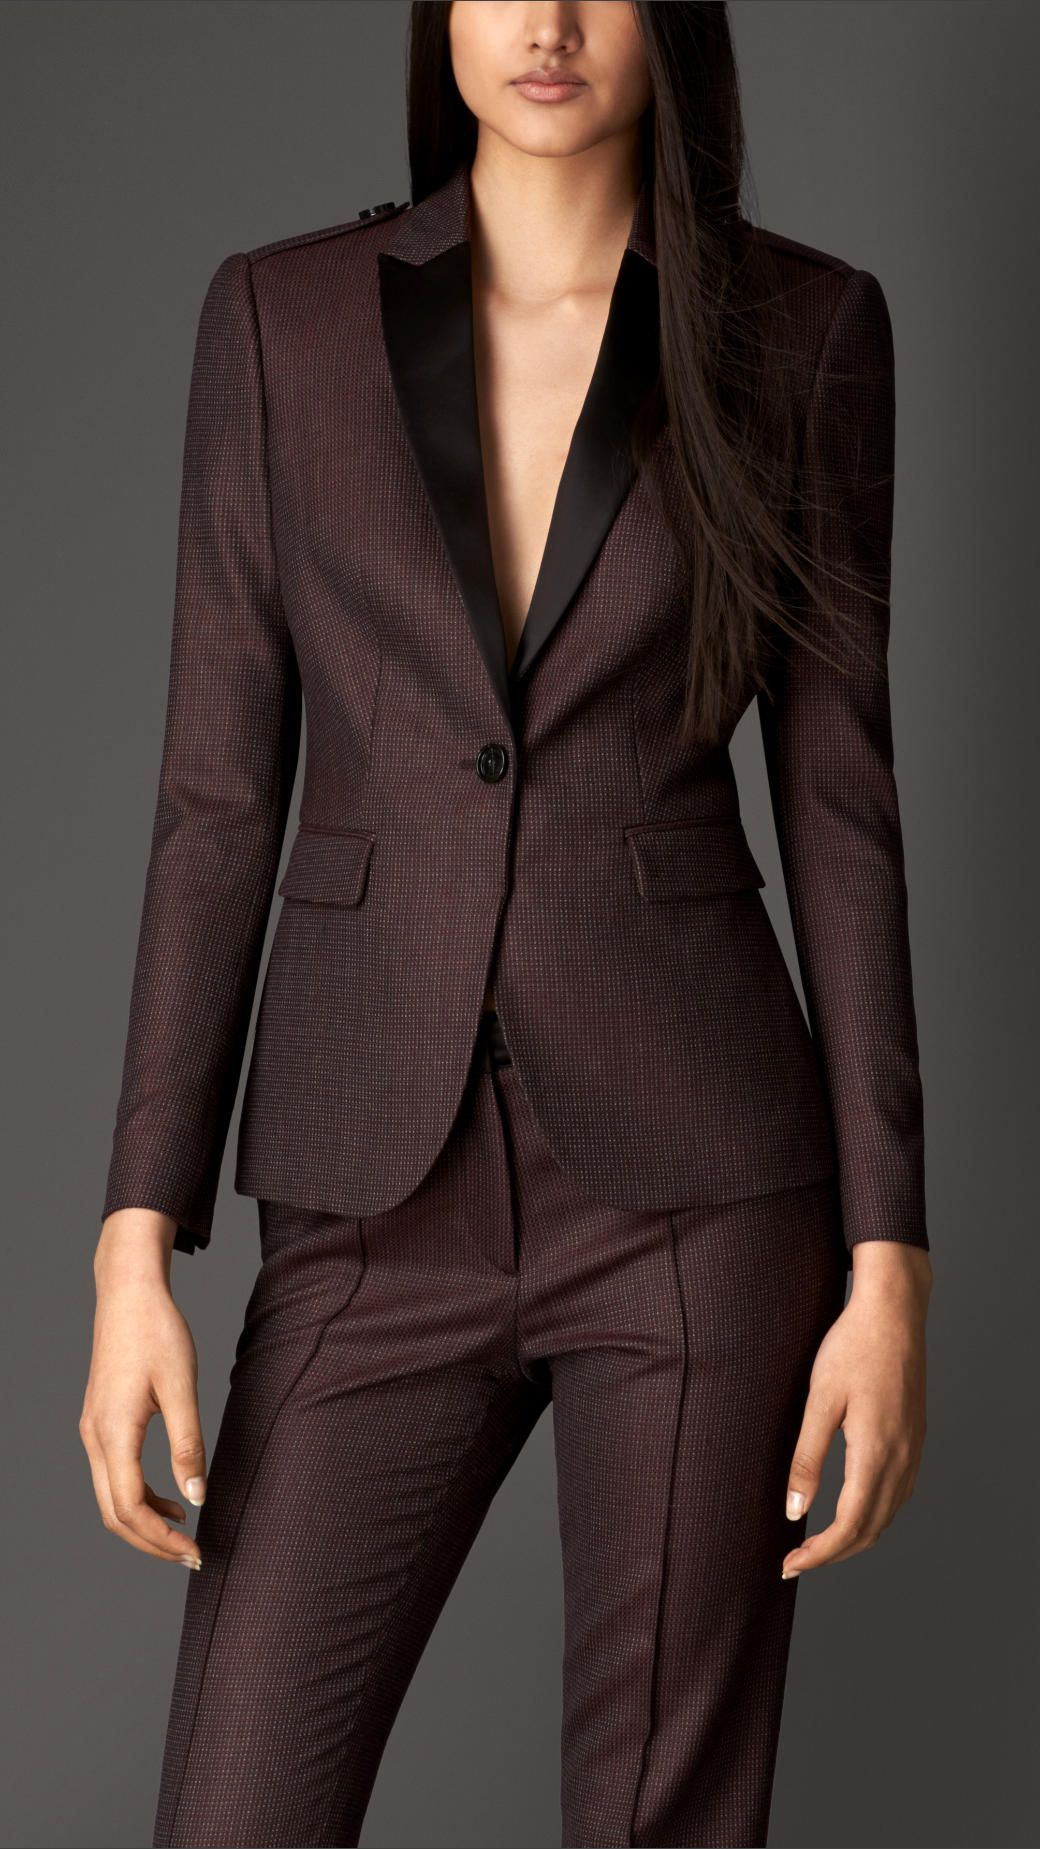 083139decbf23 Virgin Wool Tailored Jacket   Burberry   À LA MODE   Pinterest ...